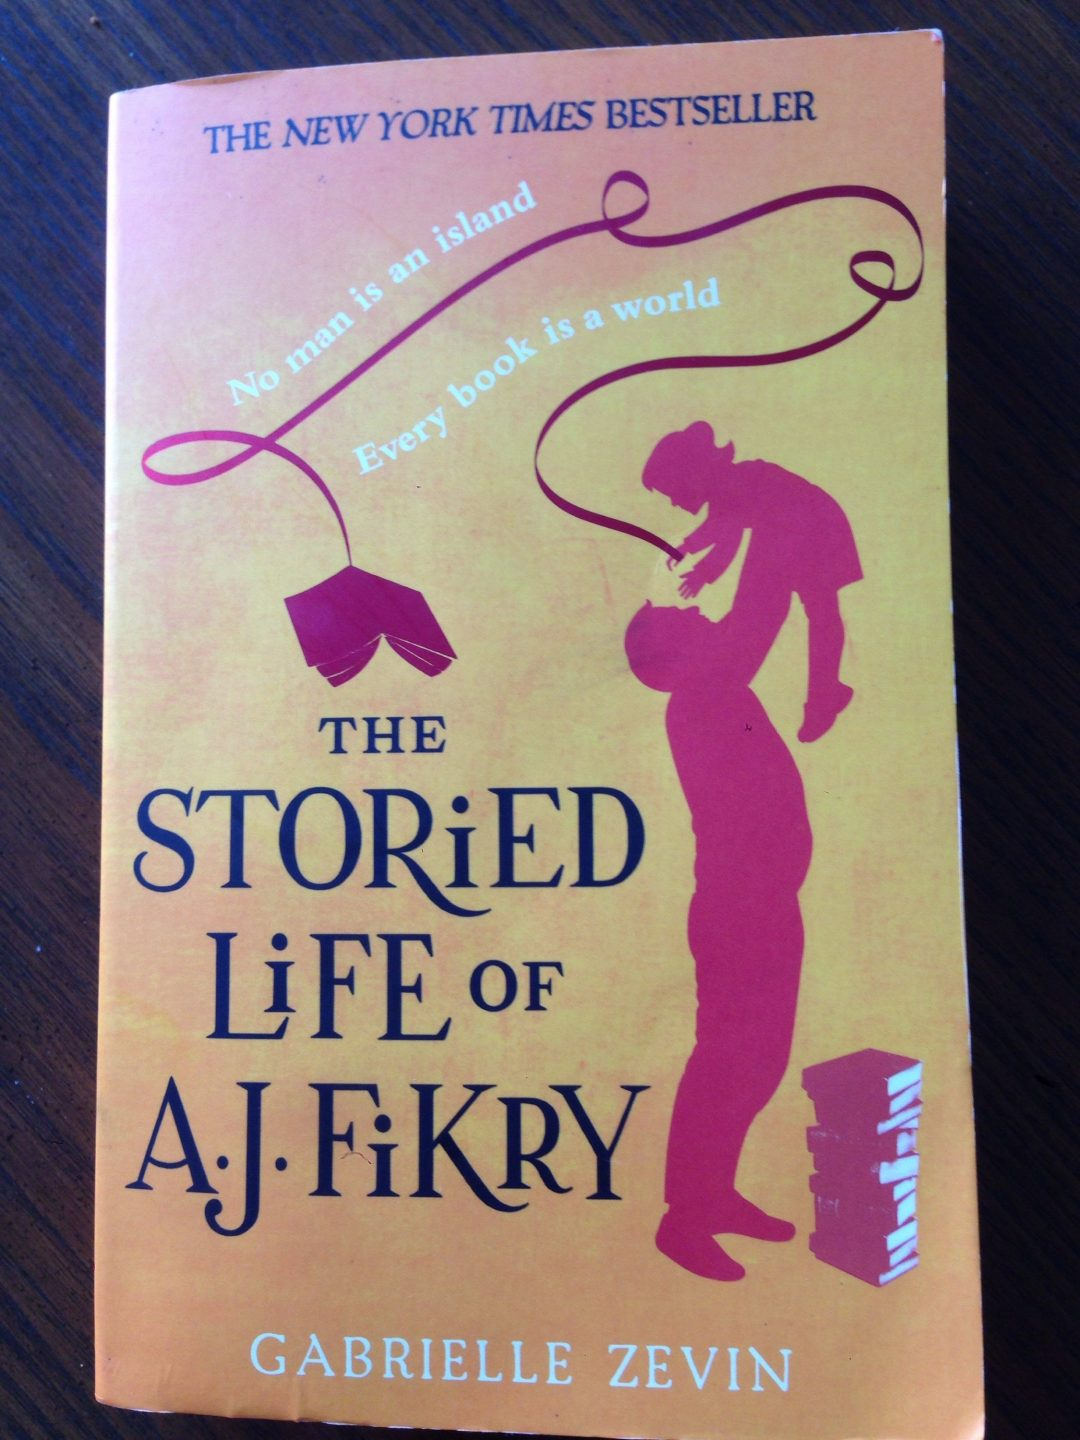 The Storied Life of AJ Fikry review